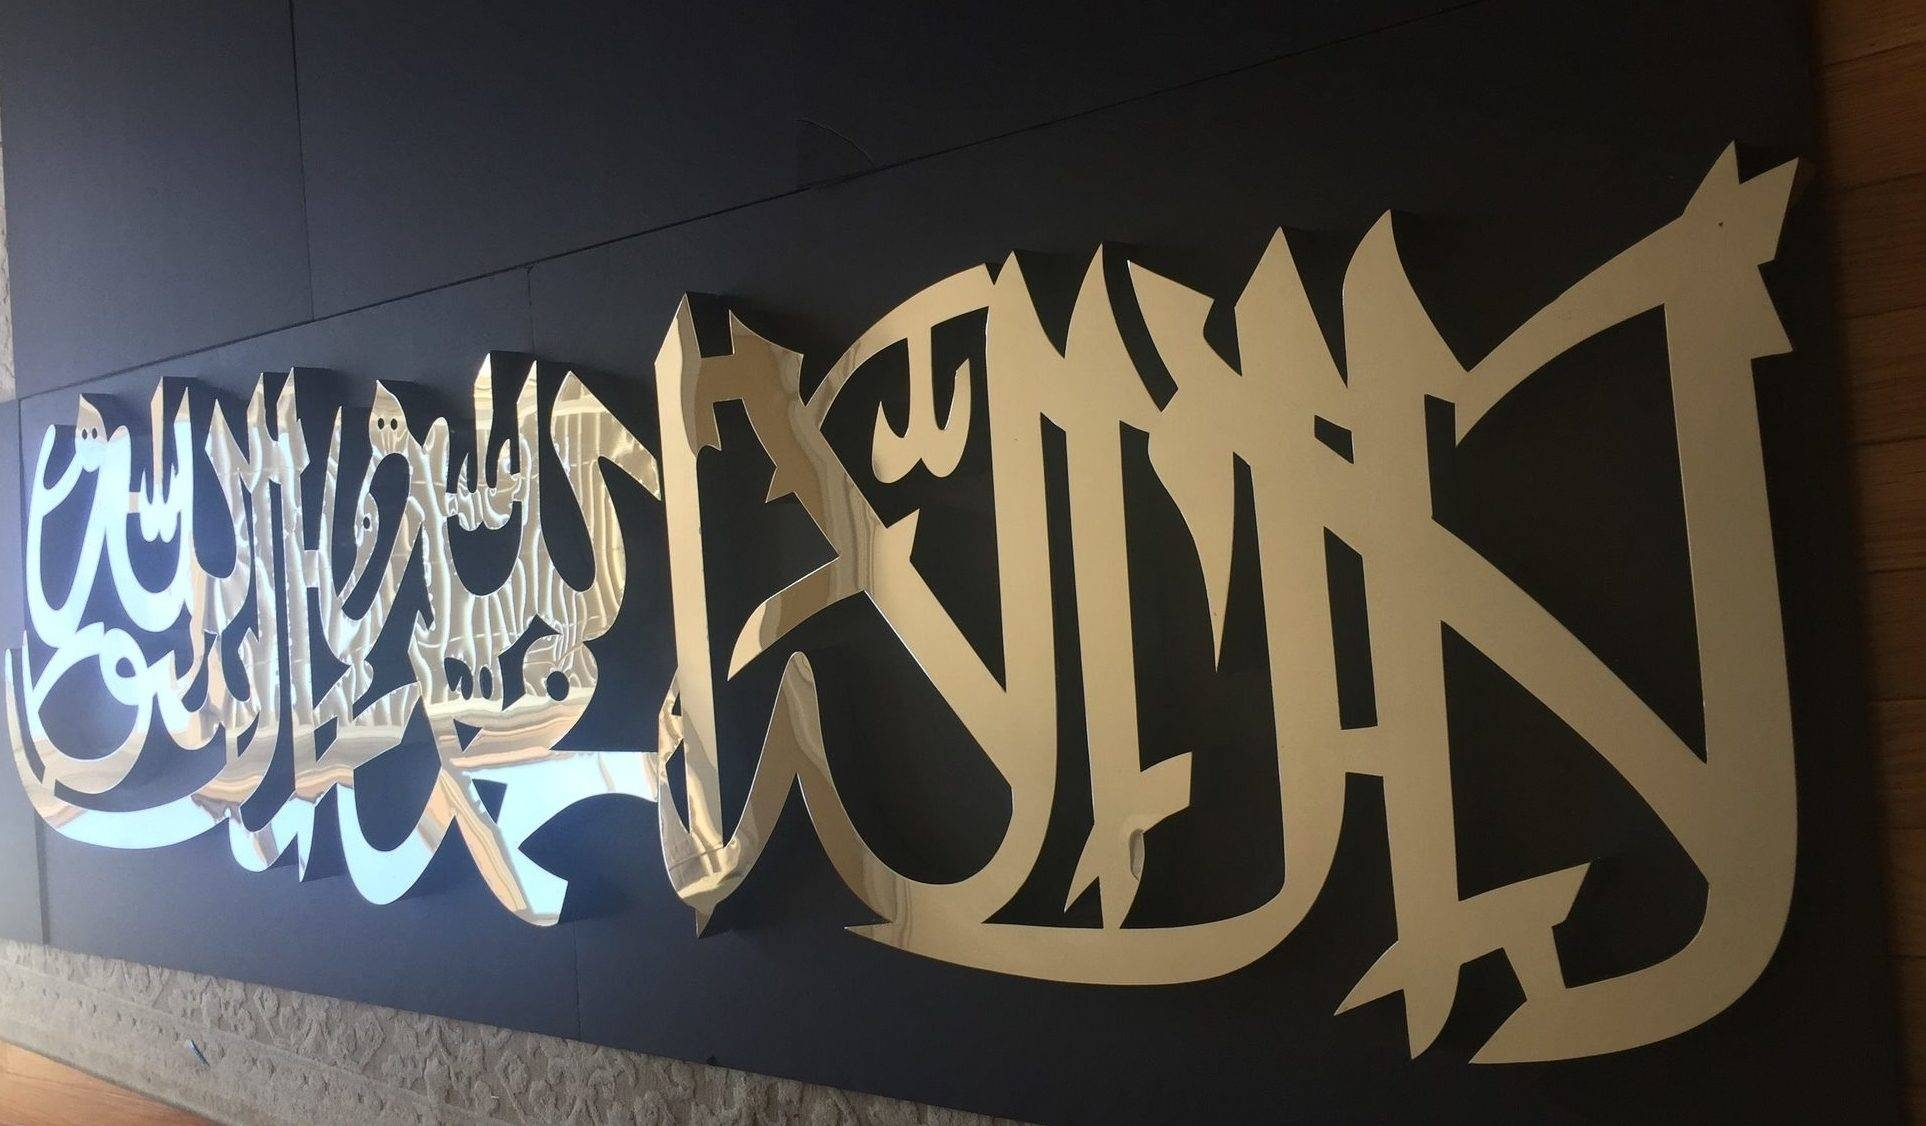 Shahada / Kalima Grand Modern Islamic Wall Art Calligraphy Within Most Popular 3d Islamic Wall Art (View 6 of 20)